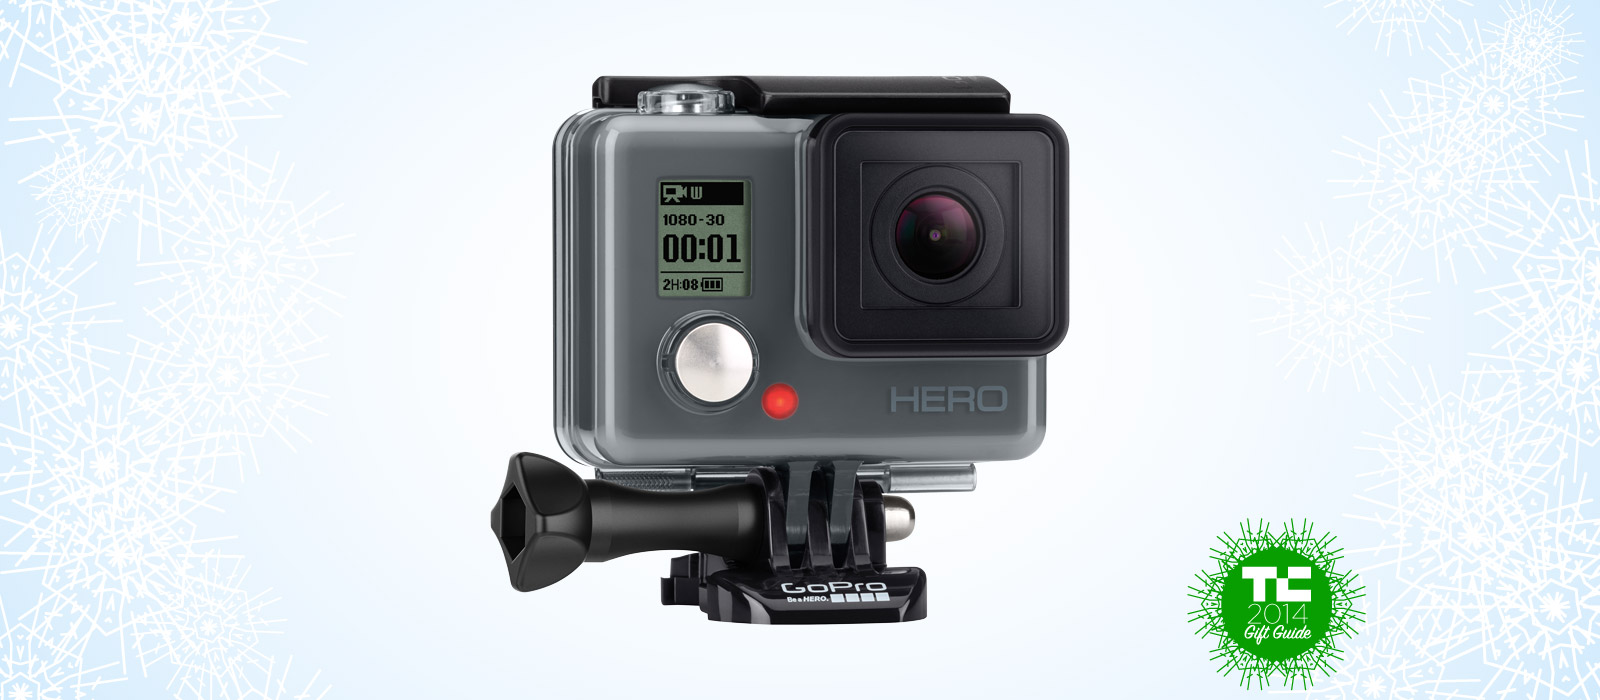 goprohero-giftguide14